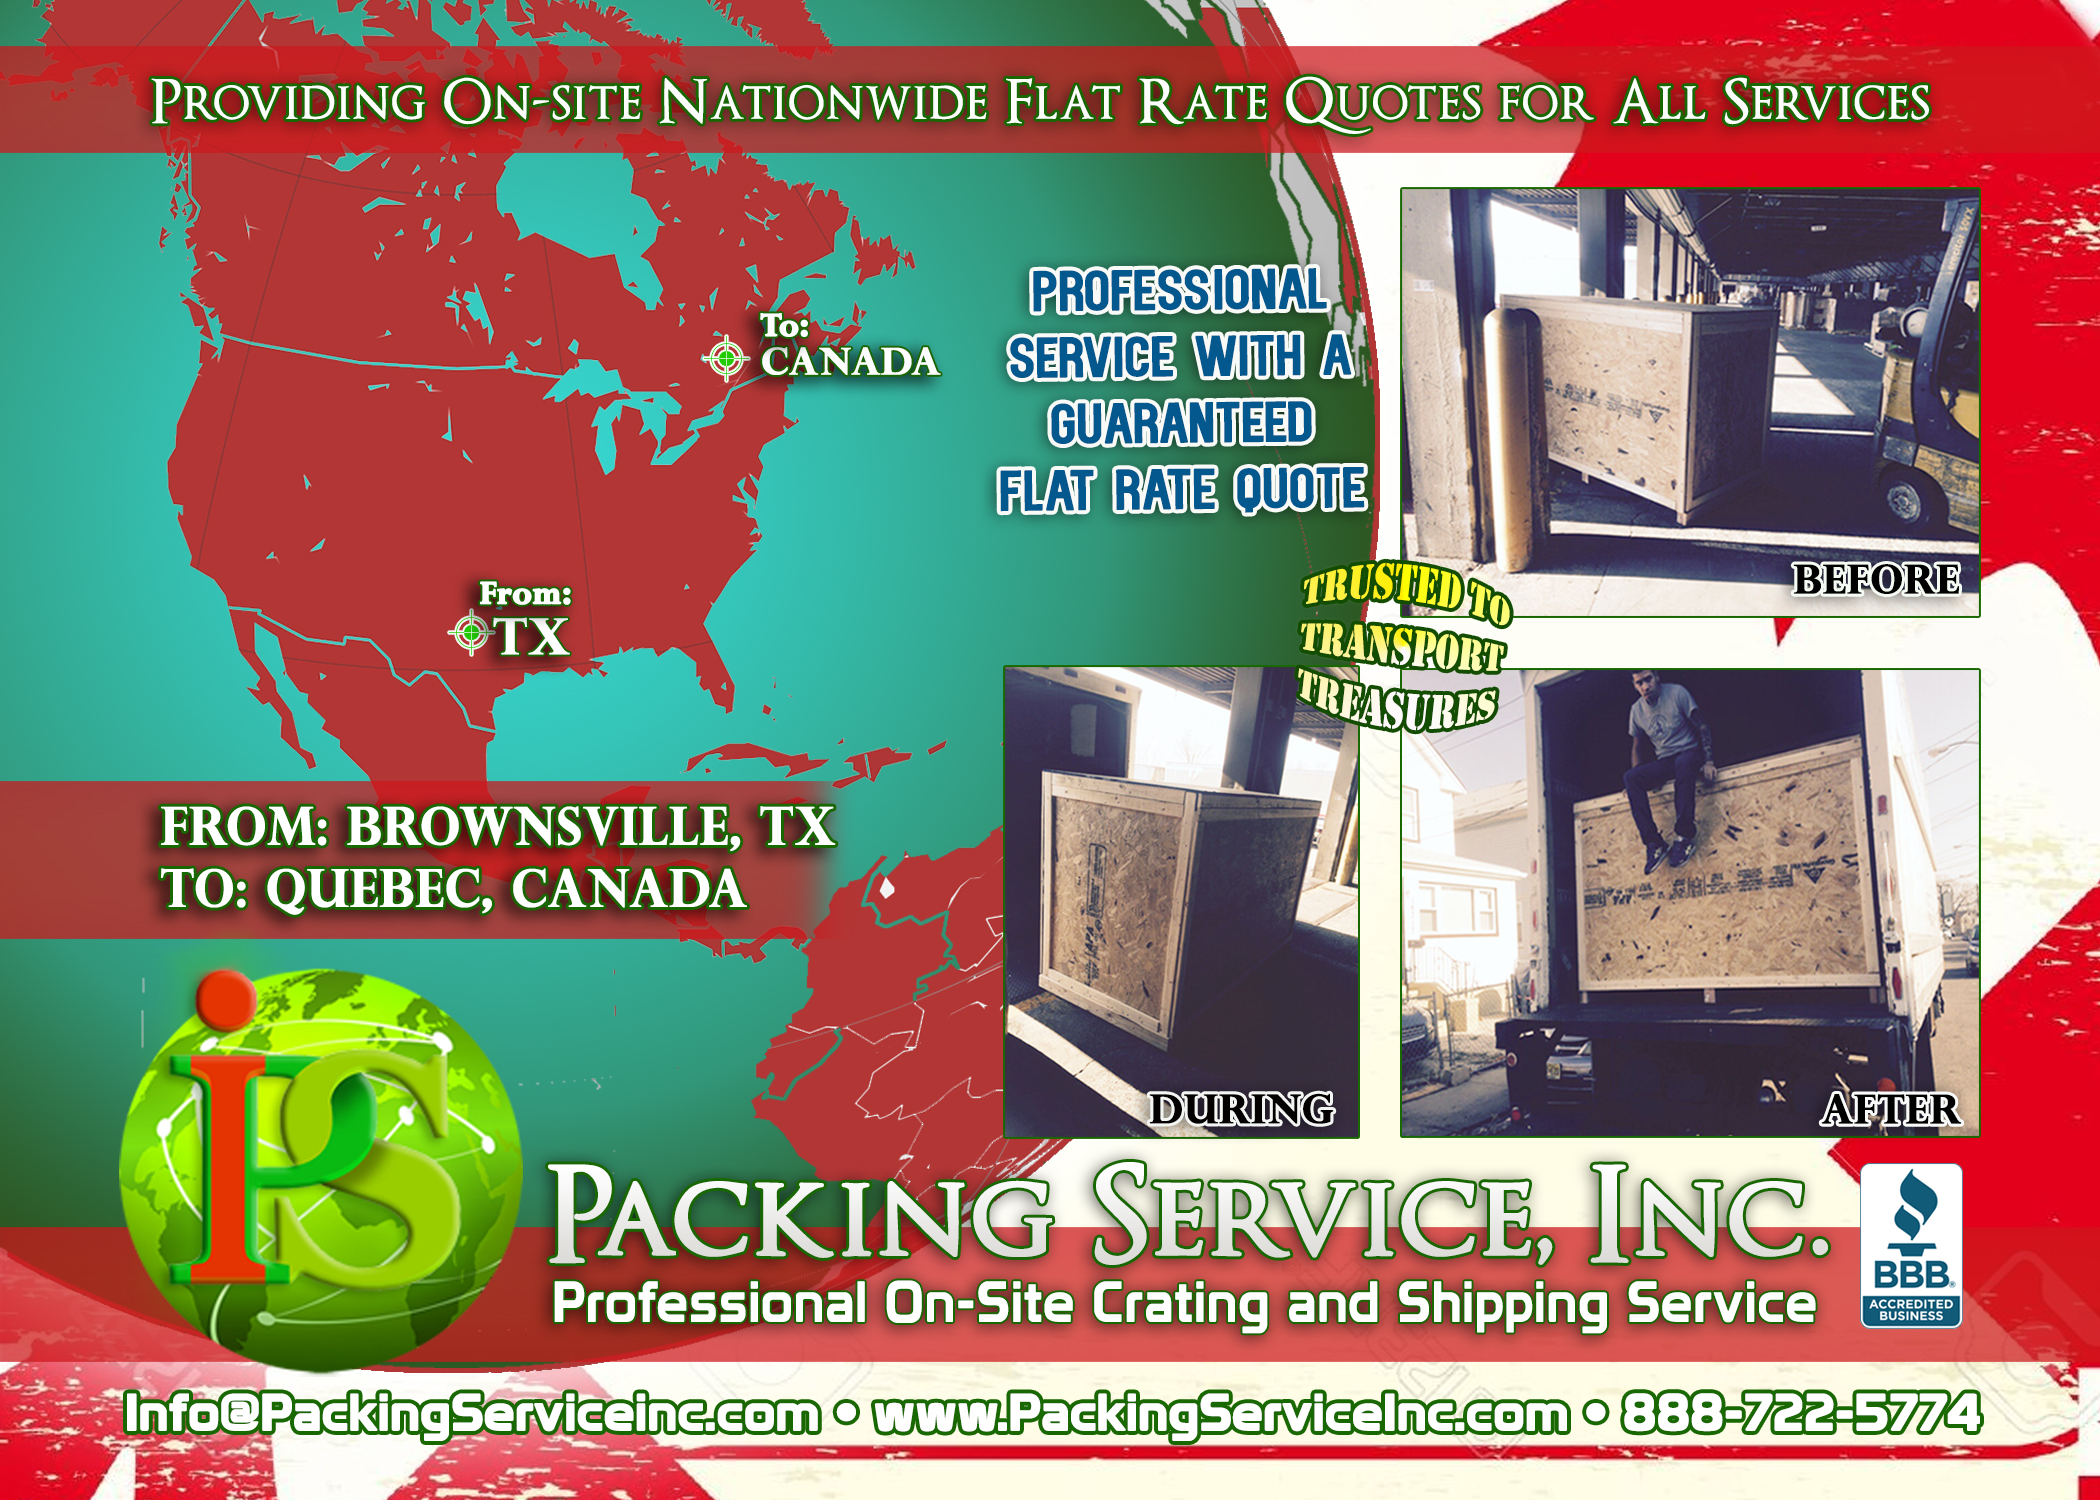 Custom wooden Crates and Shipping Services TX-CANADA with Packing Service, Inc. E